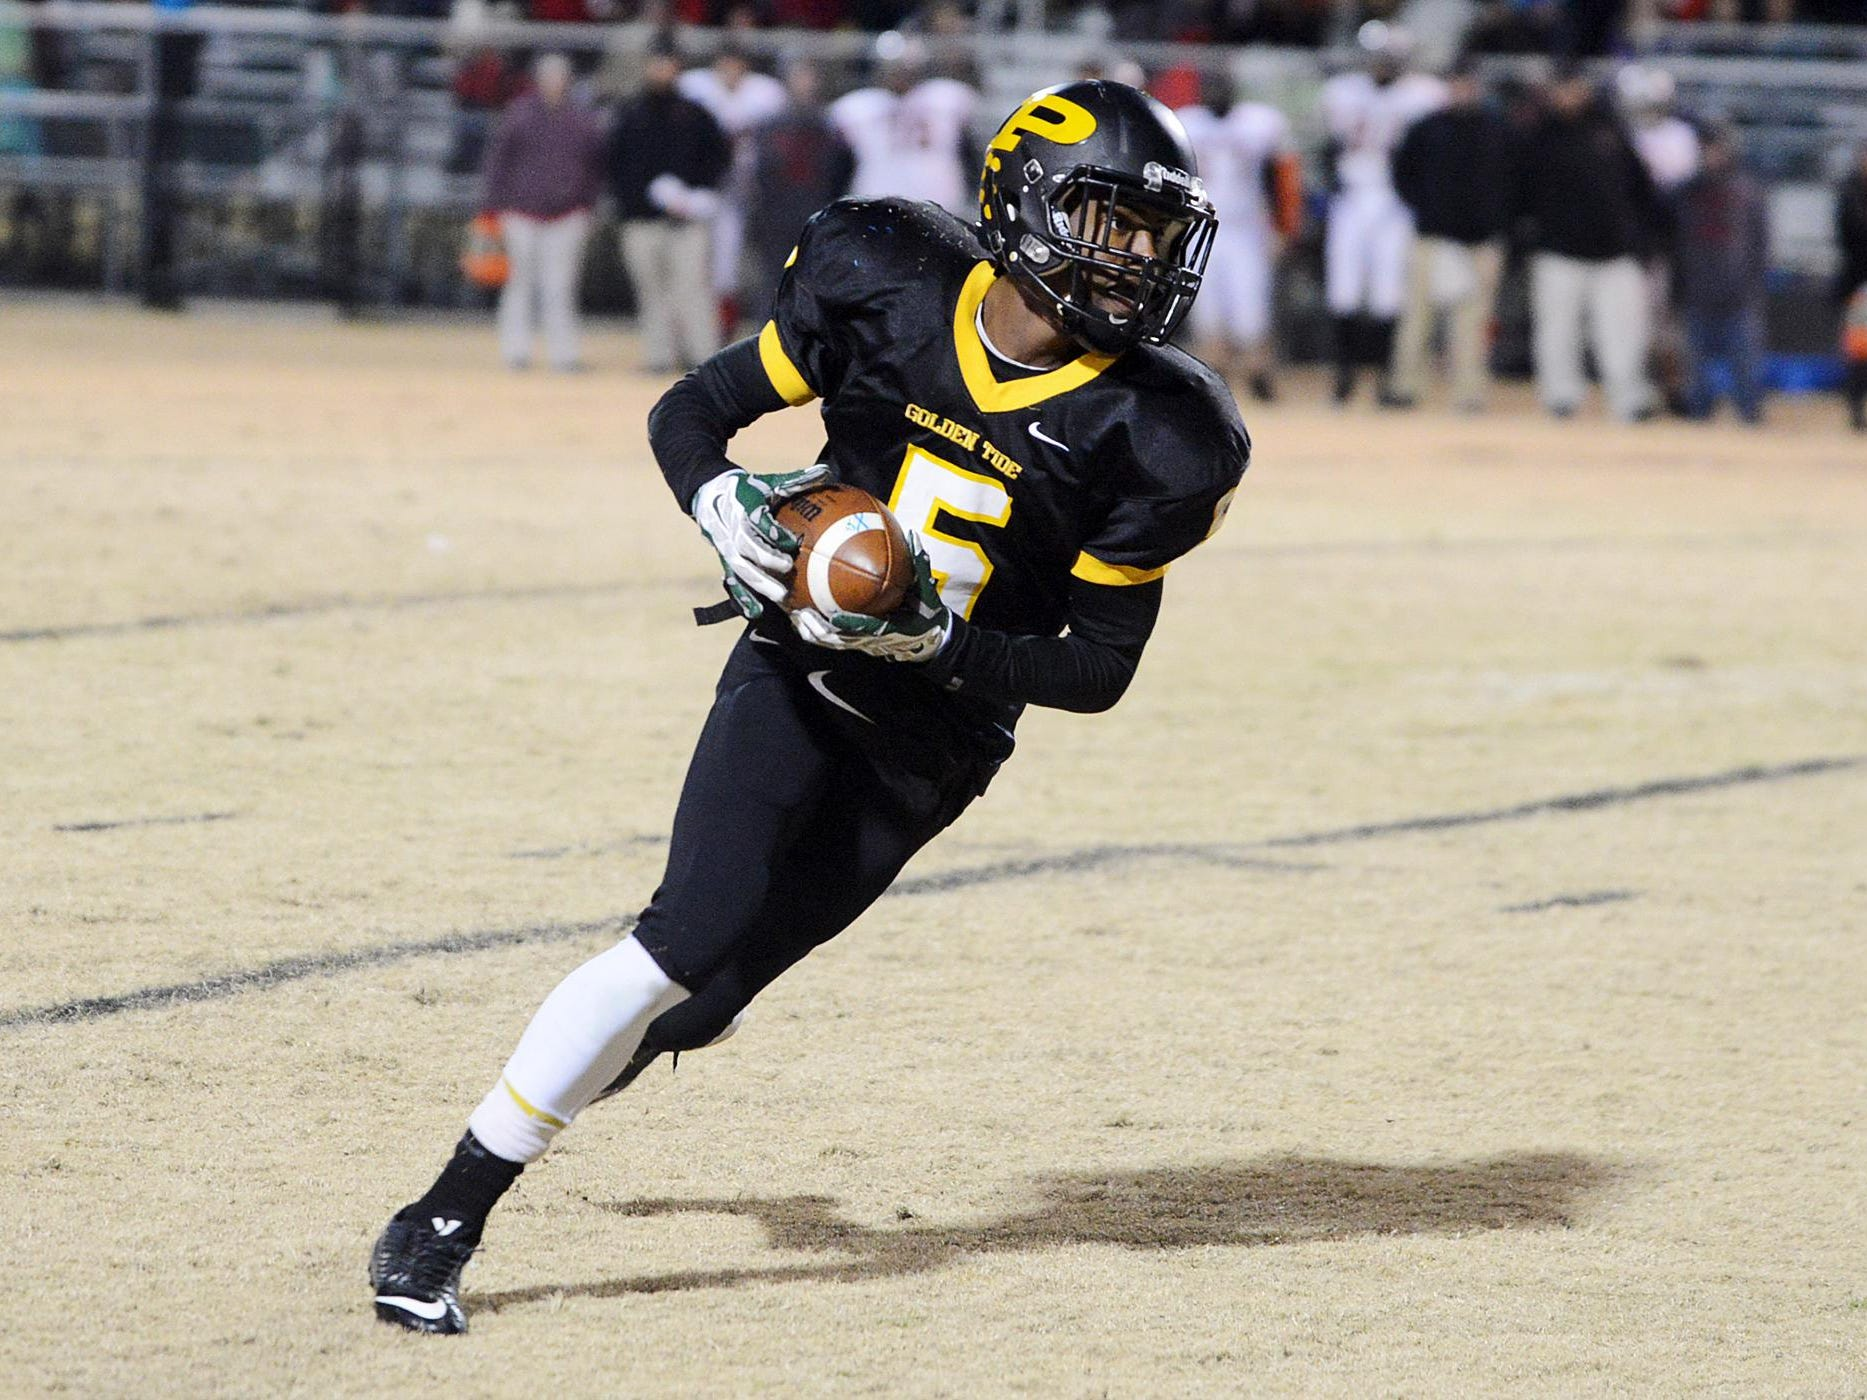 Peabody's Keyvon Goodwin and the rest of the Golden Tide open the season ranked No. 2 in Class 1A.